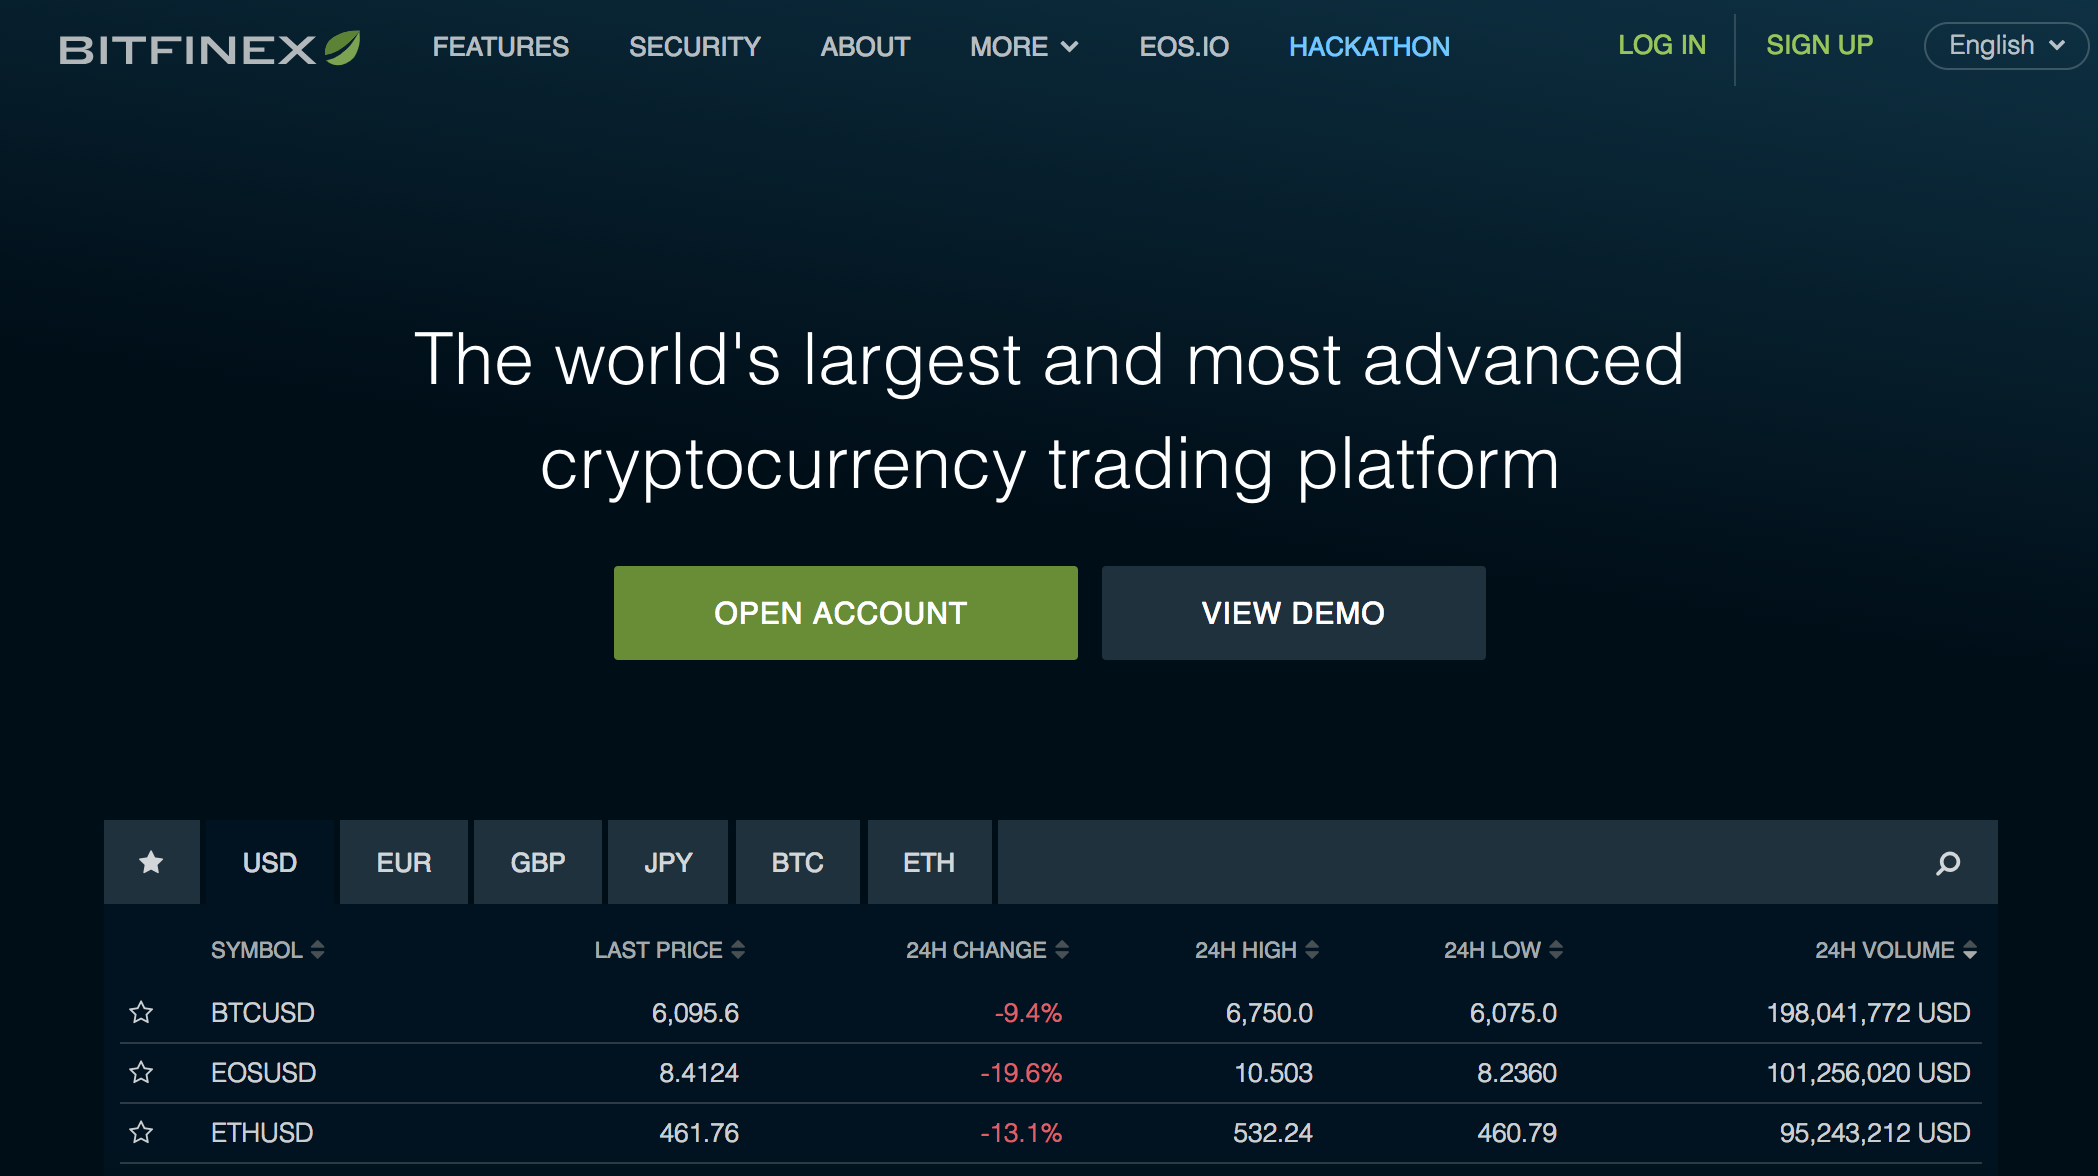 Cryptocurrency exhchanges, where to buy bitcoin, bitfinex